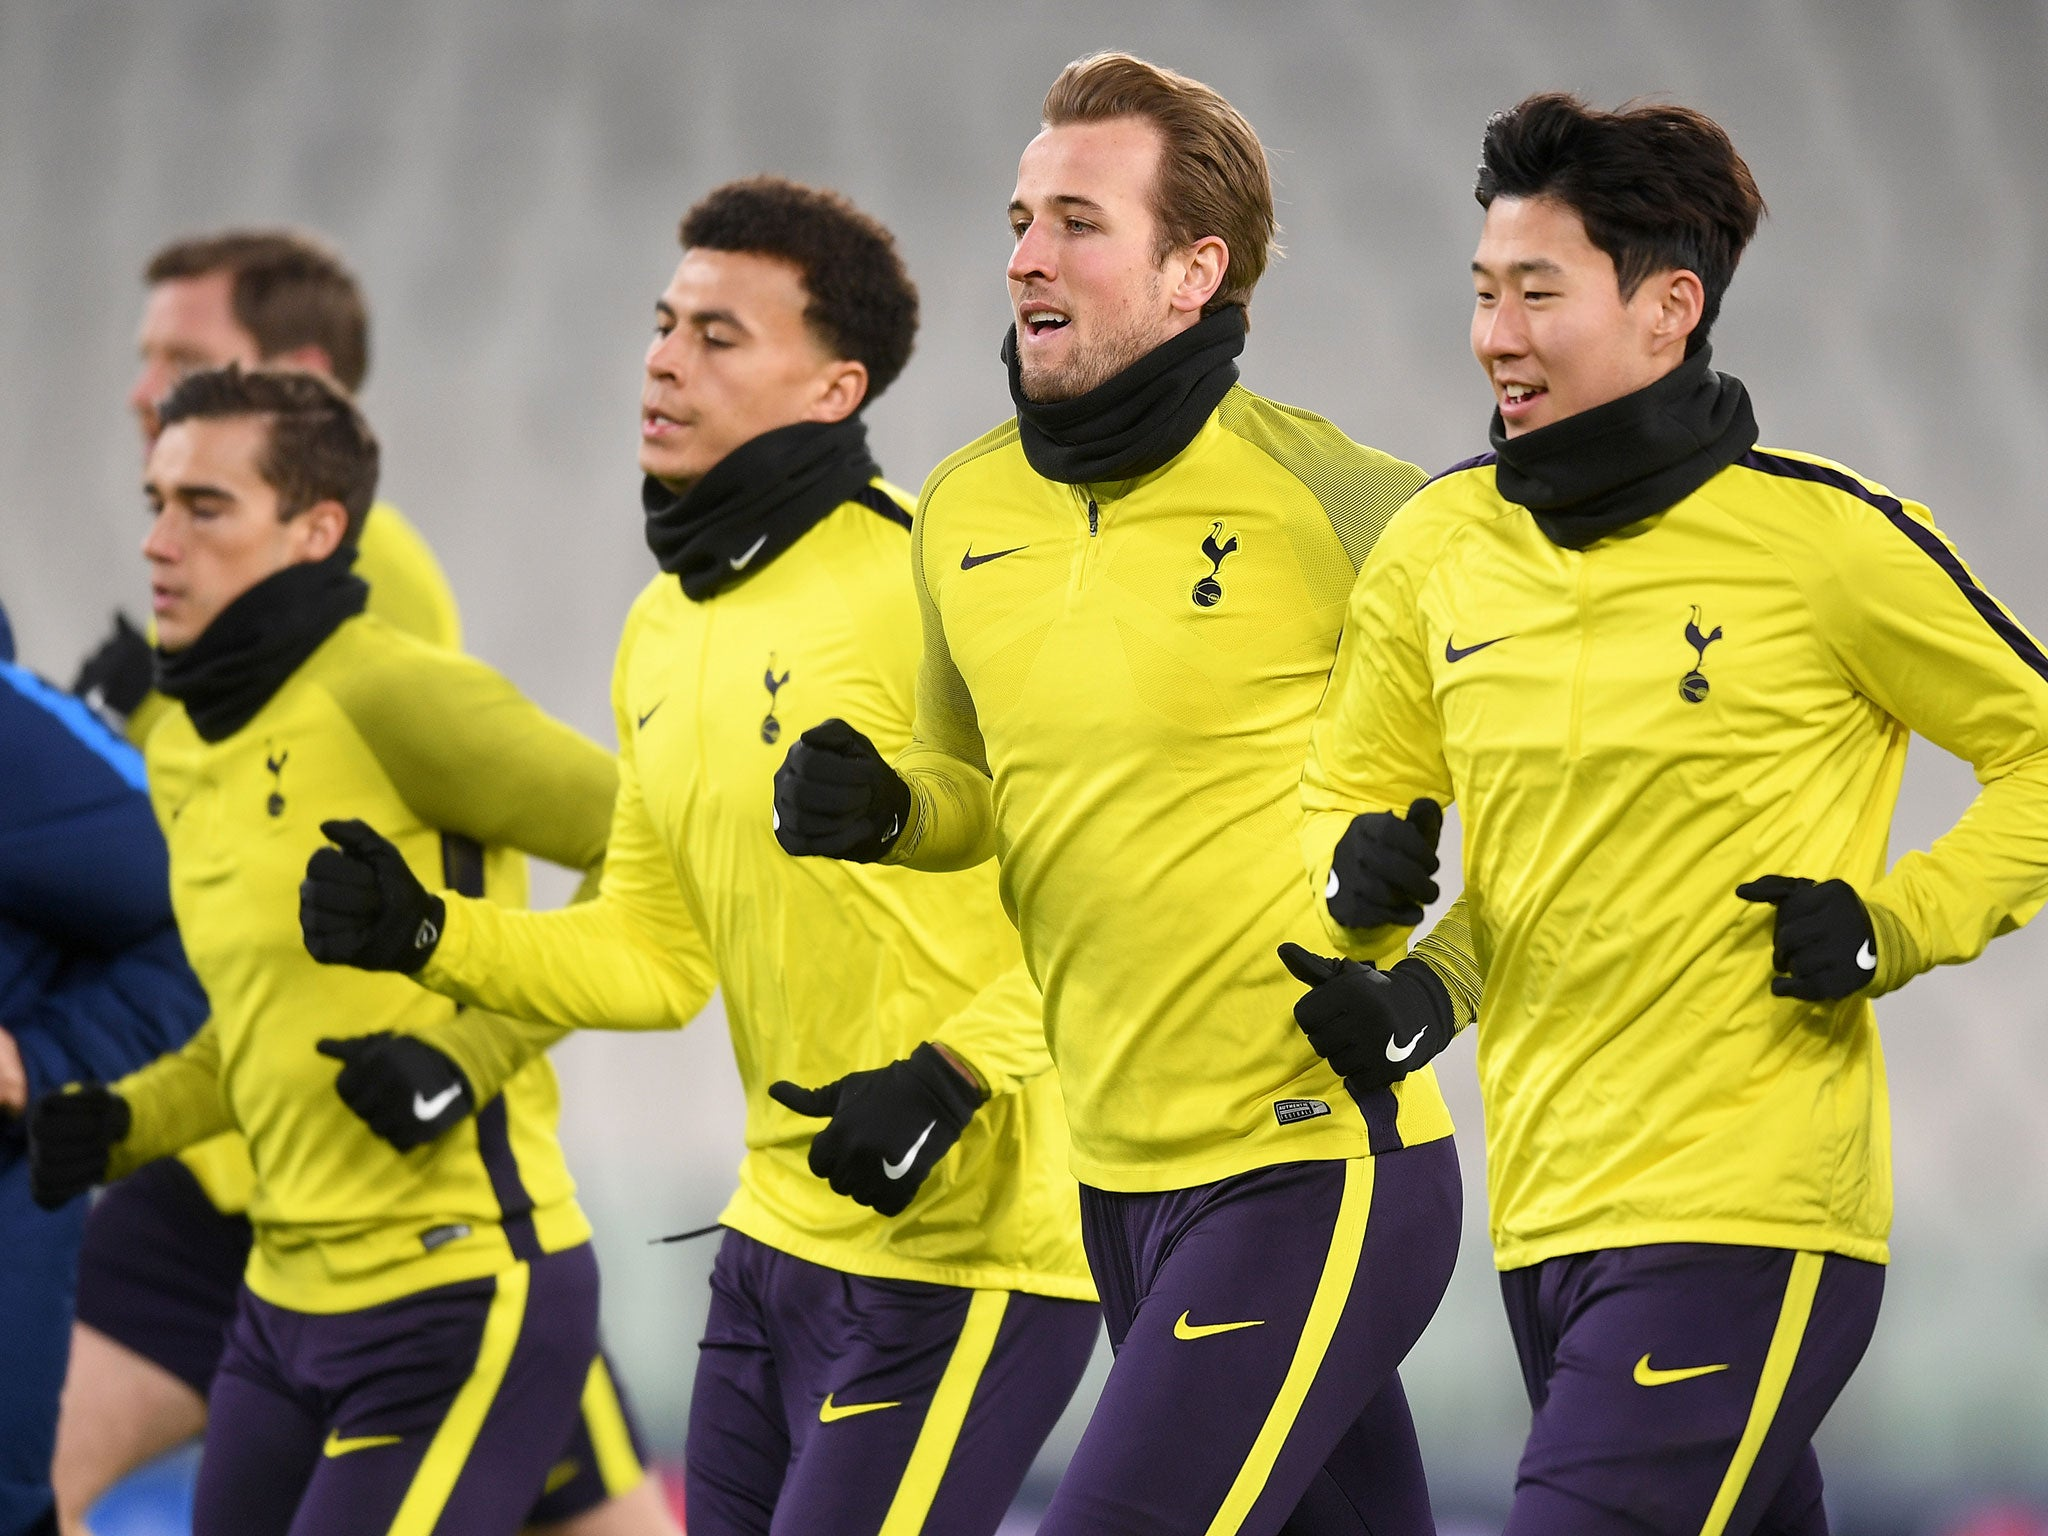 Juventus vs Tottenham: A thrilling European encounter that could push both sides to their limits